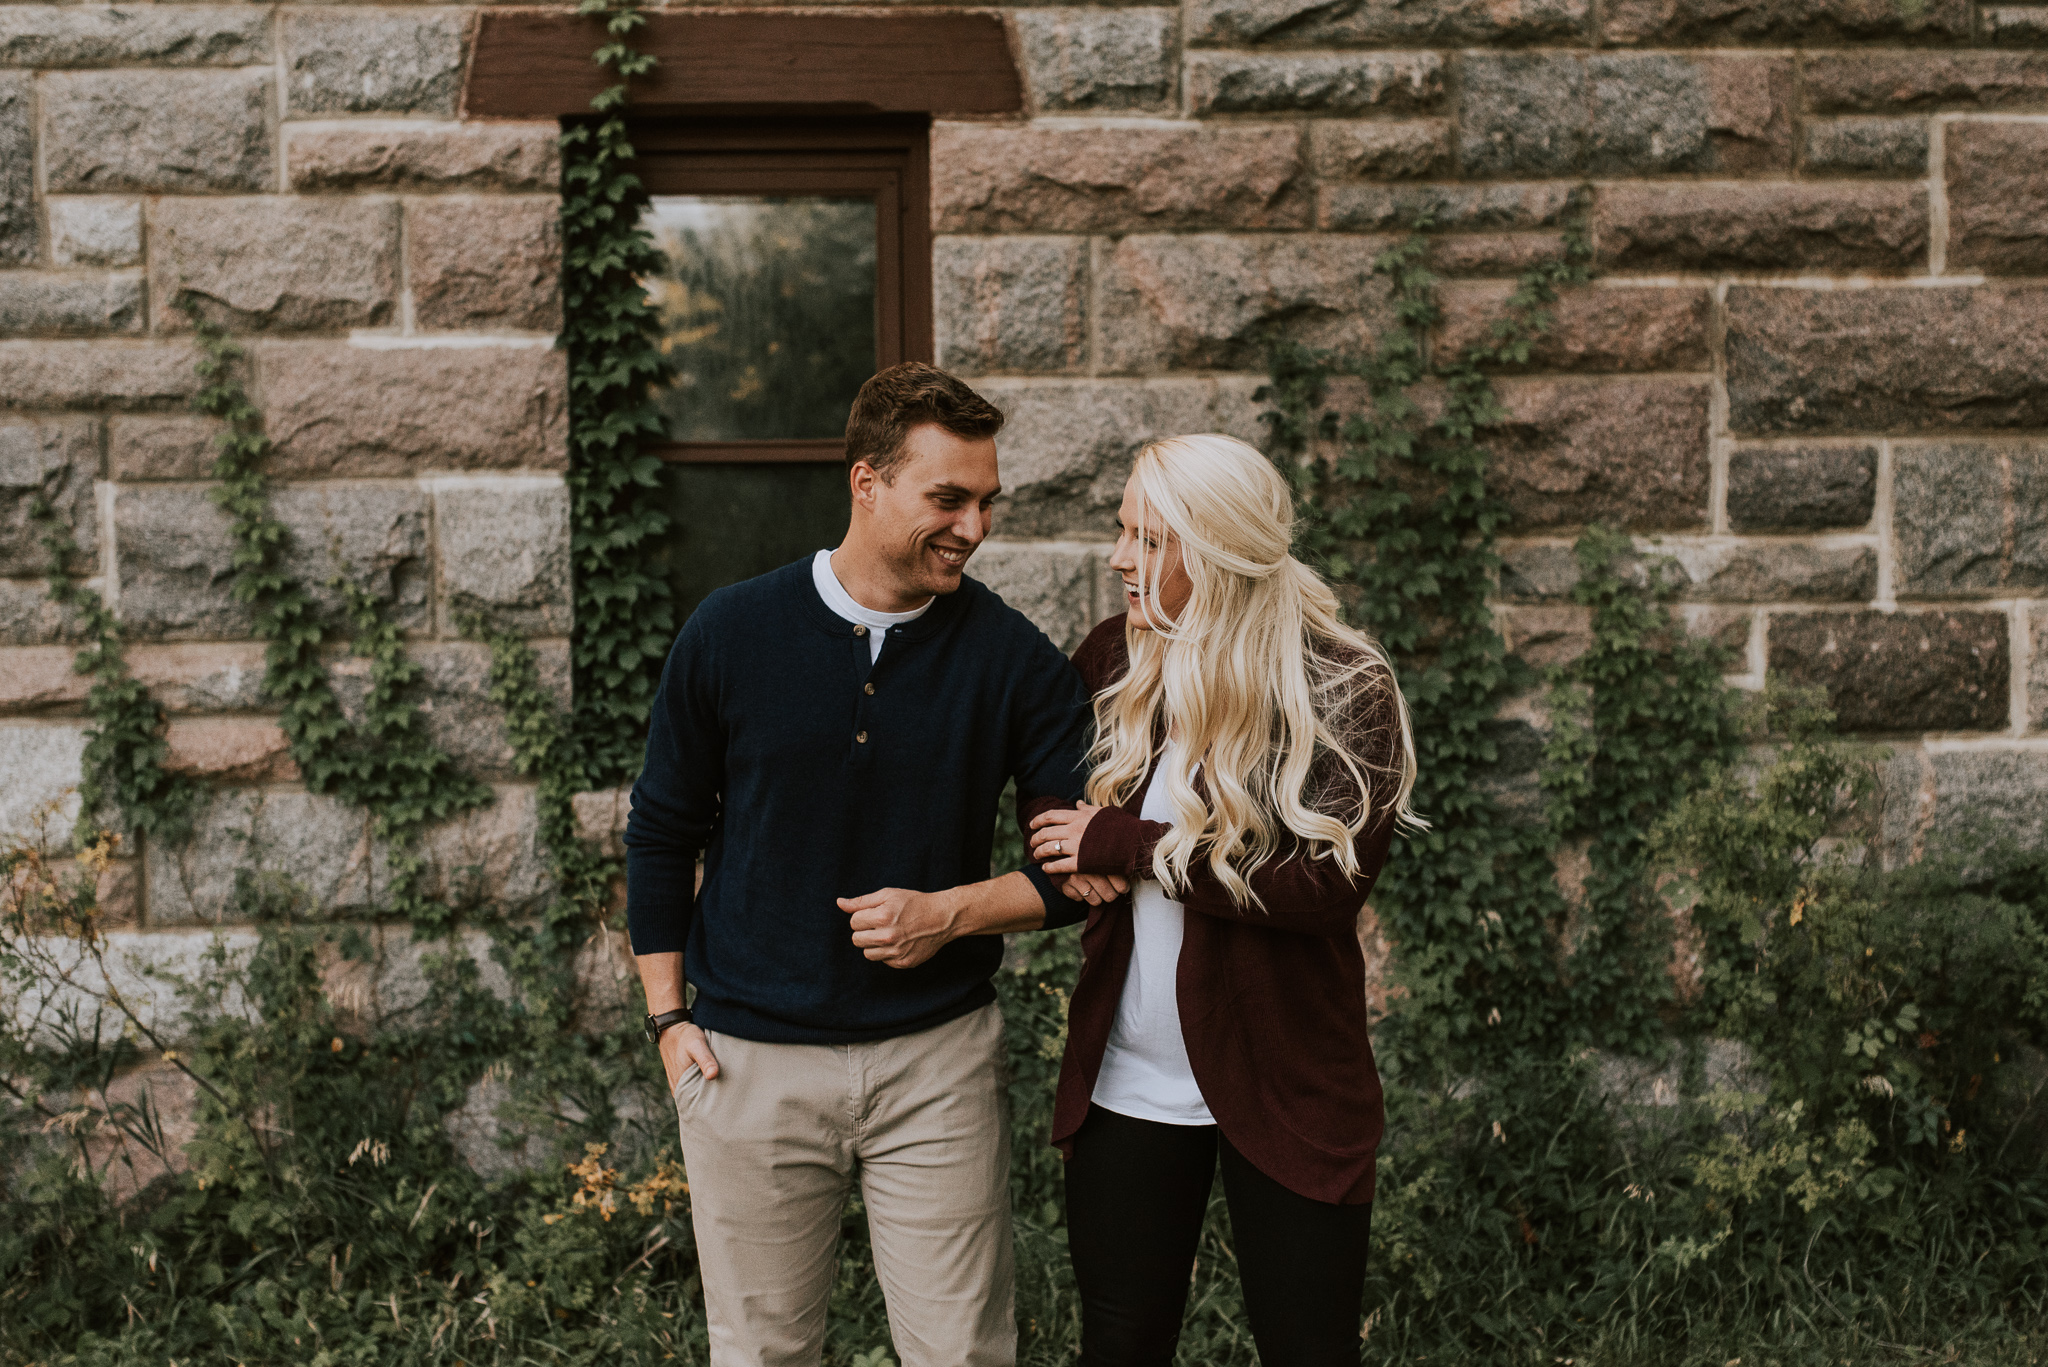 fort-lincoln-state-park-engagement-wedding-photography-17.jpg